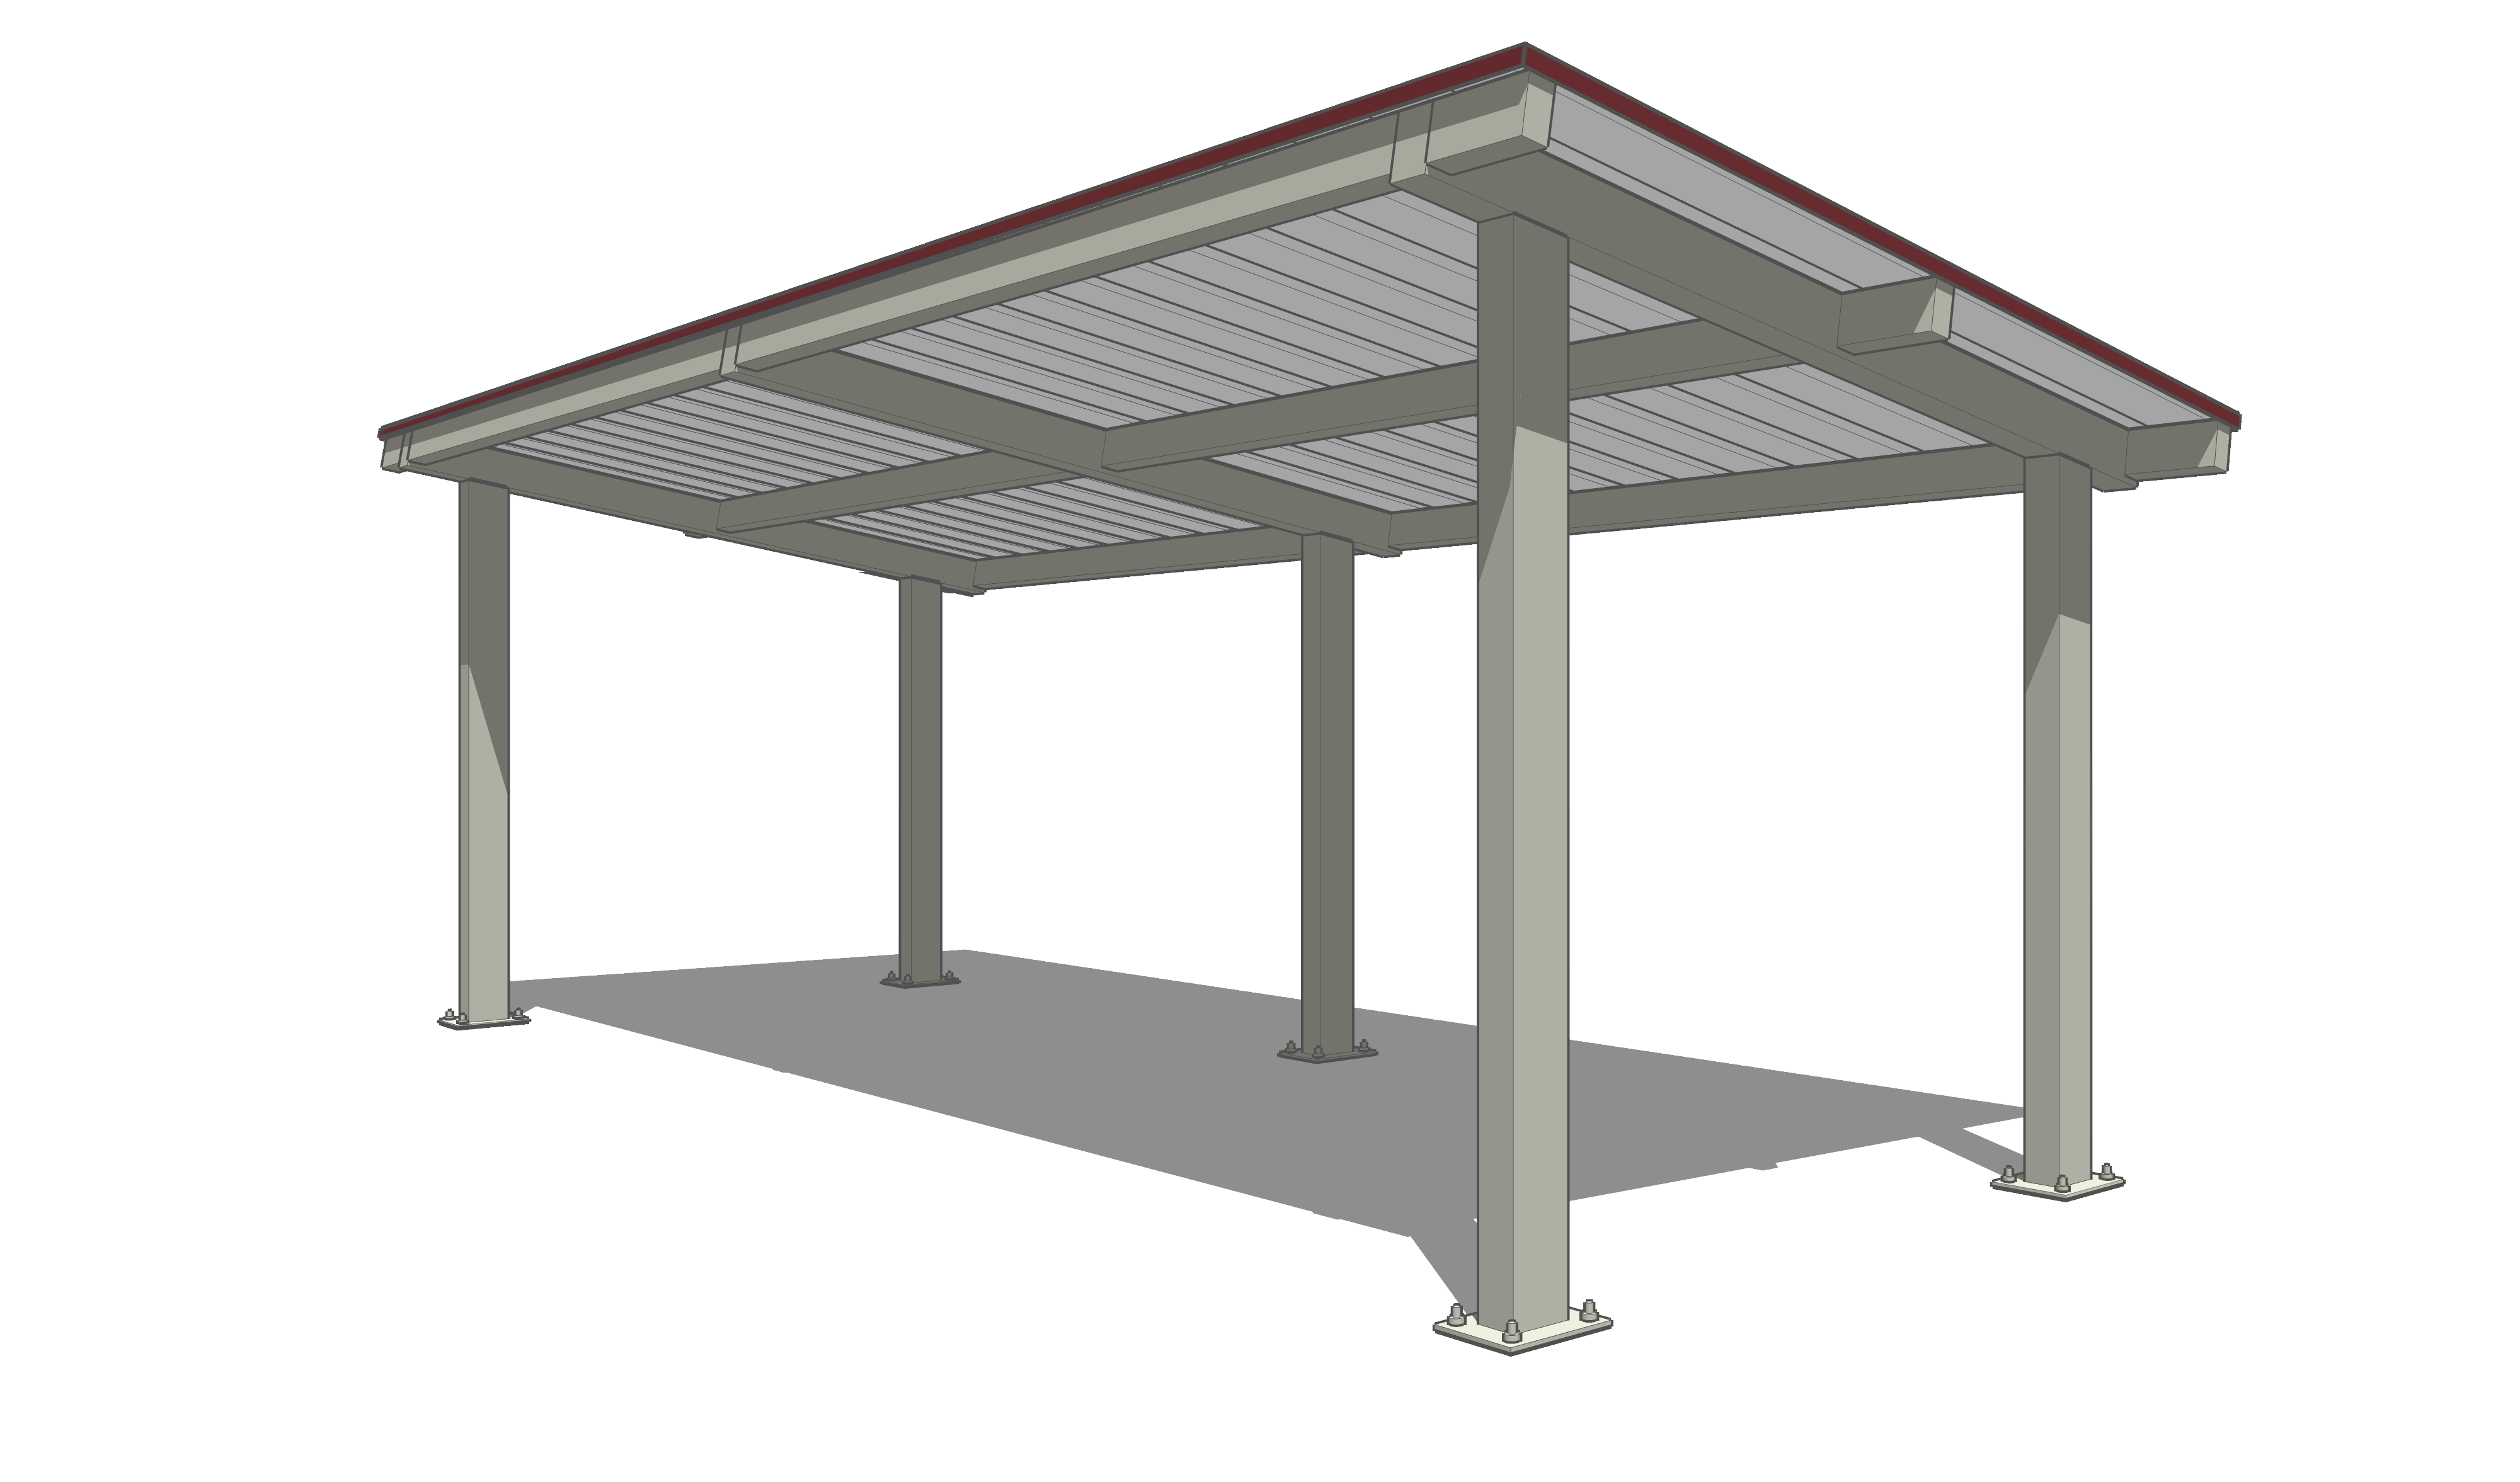 Item item 2875622 as well Pdf Flat Roof Carport Construction Diy Free Plans Download Wood Lathe Duplicator Attachment further Floating Decks besides 18x24 Foot Timber Frame Pavilion Plan further Steelworx Cantilevered Monoslopes Dugouts. on large pergola plans free